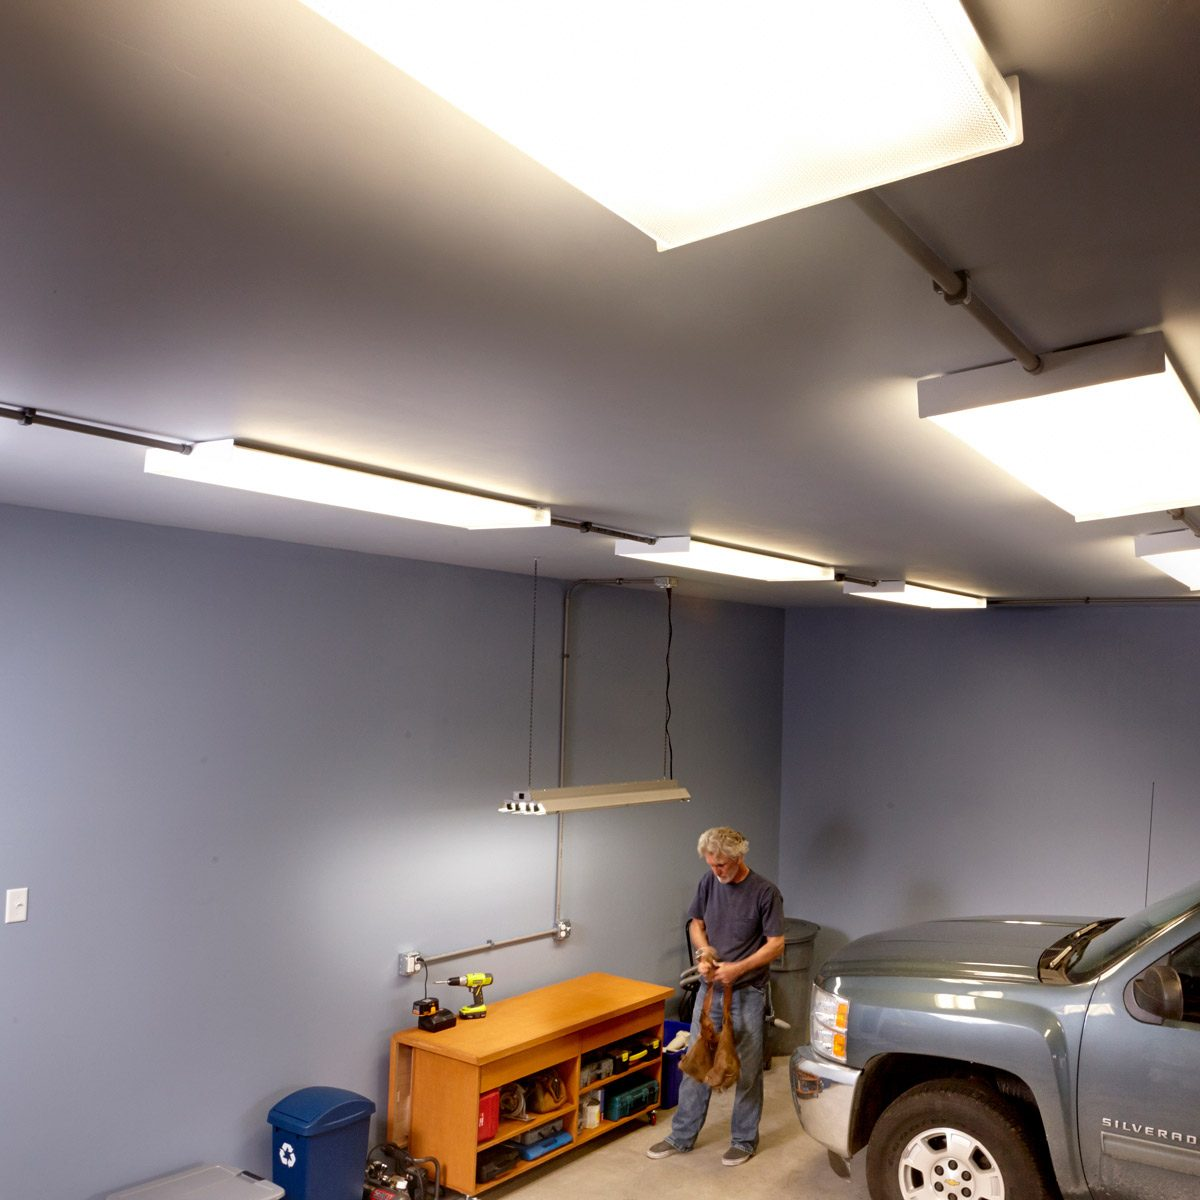 Ceiling Fan Size For Garage How To Wire A Finished Garage Family Handyman The Family Handyman